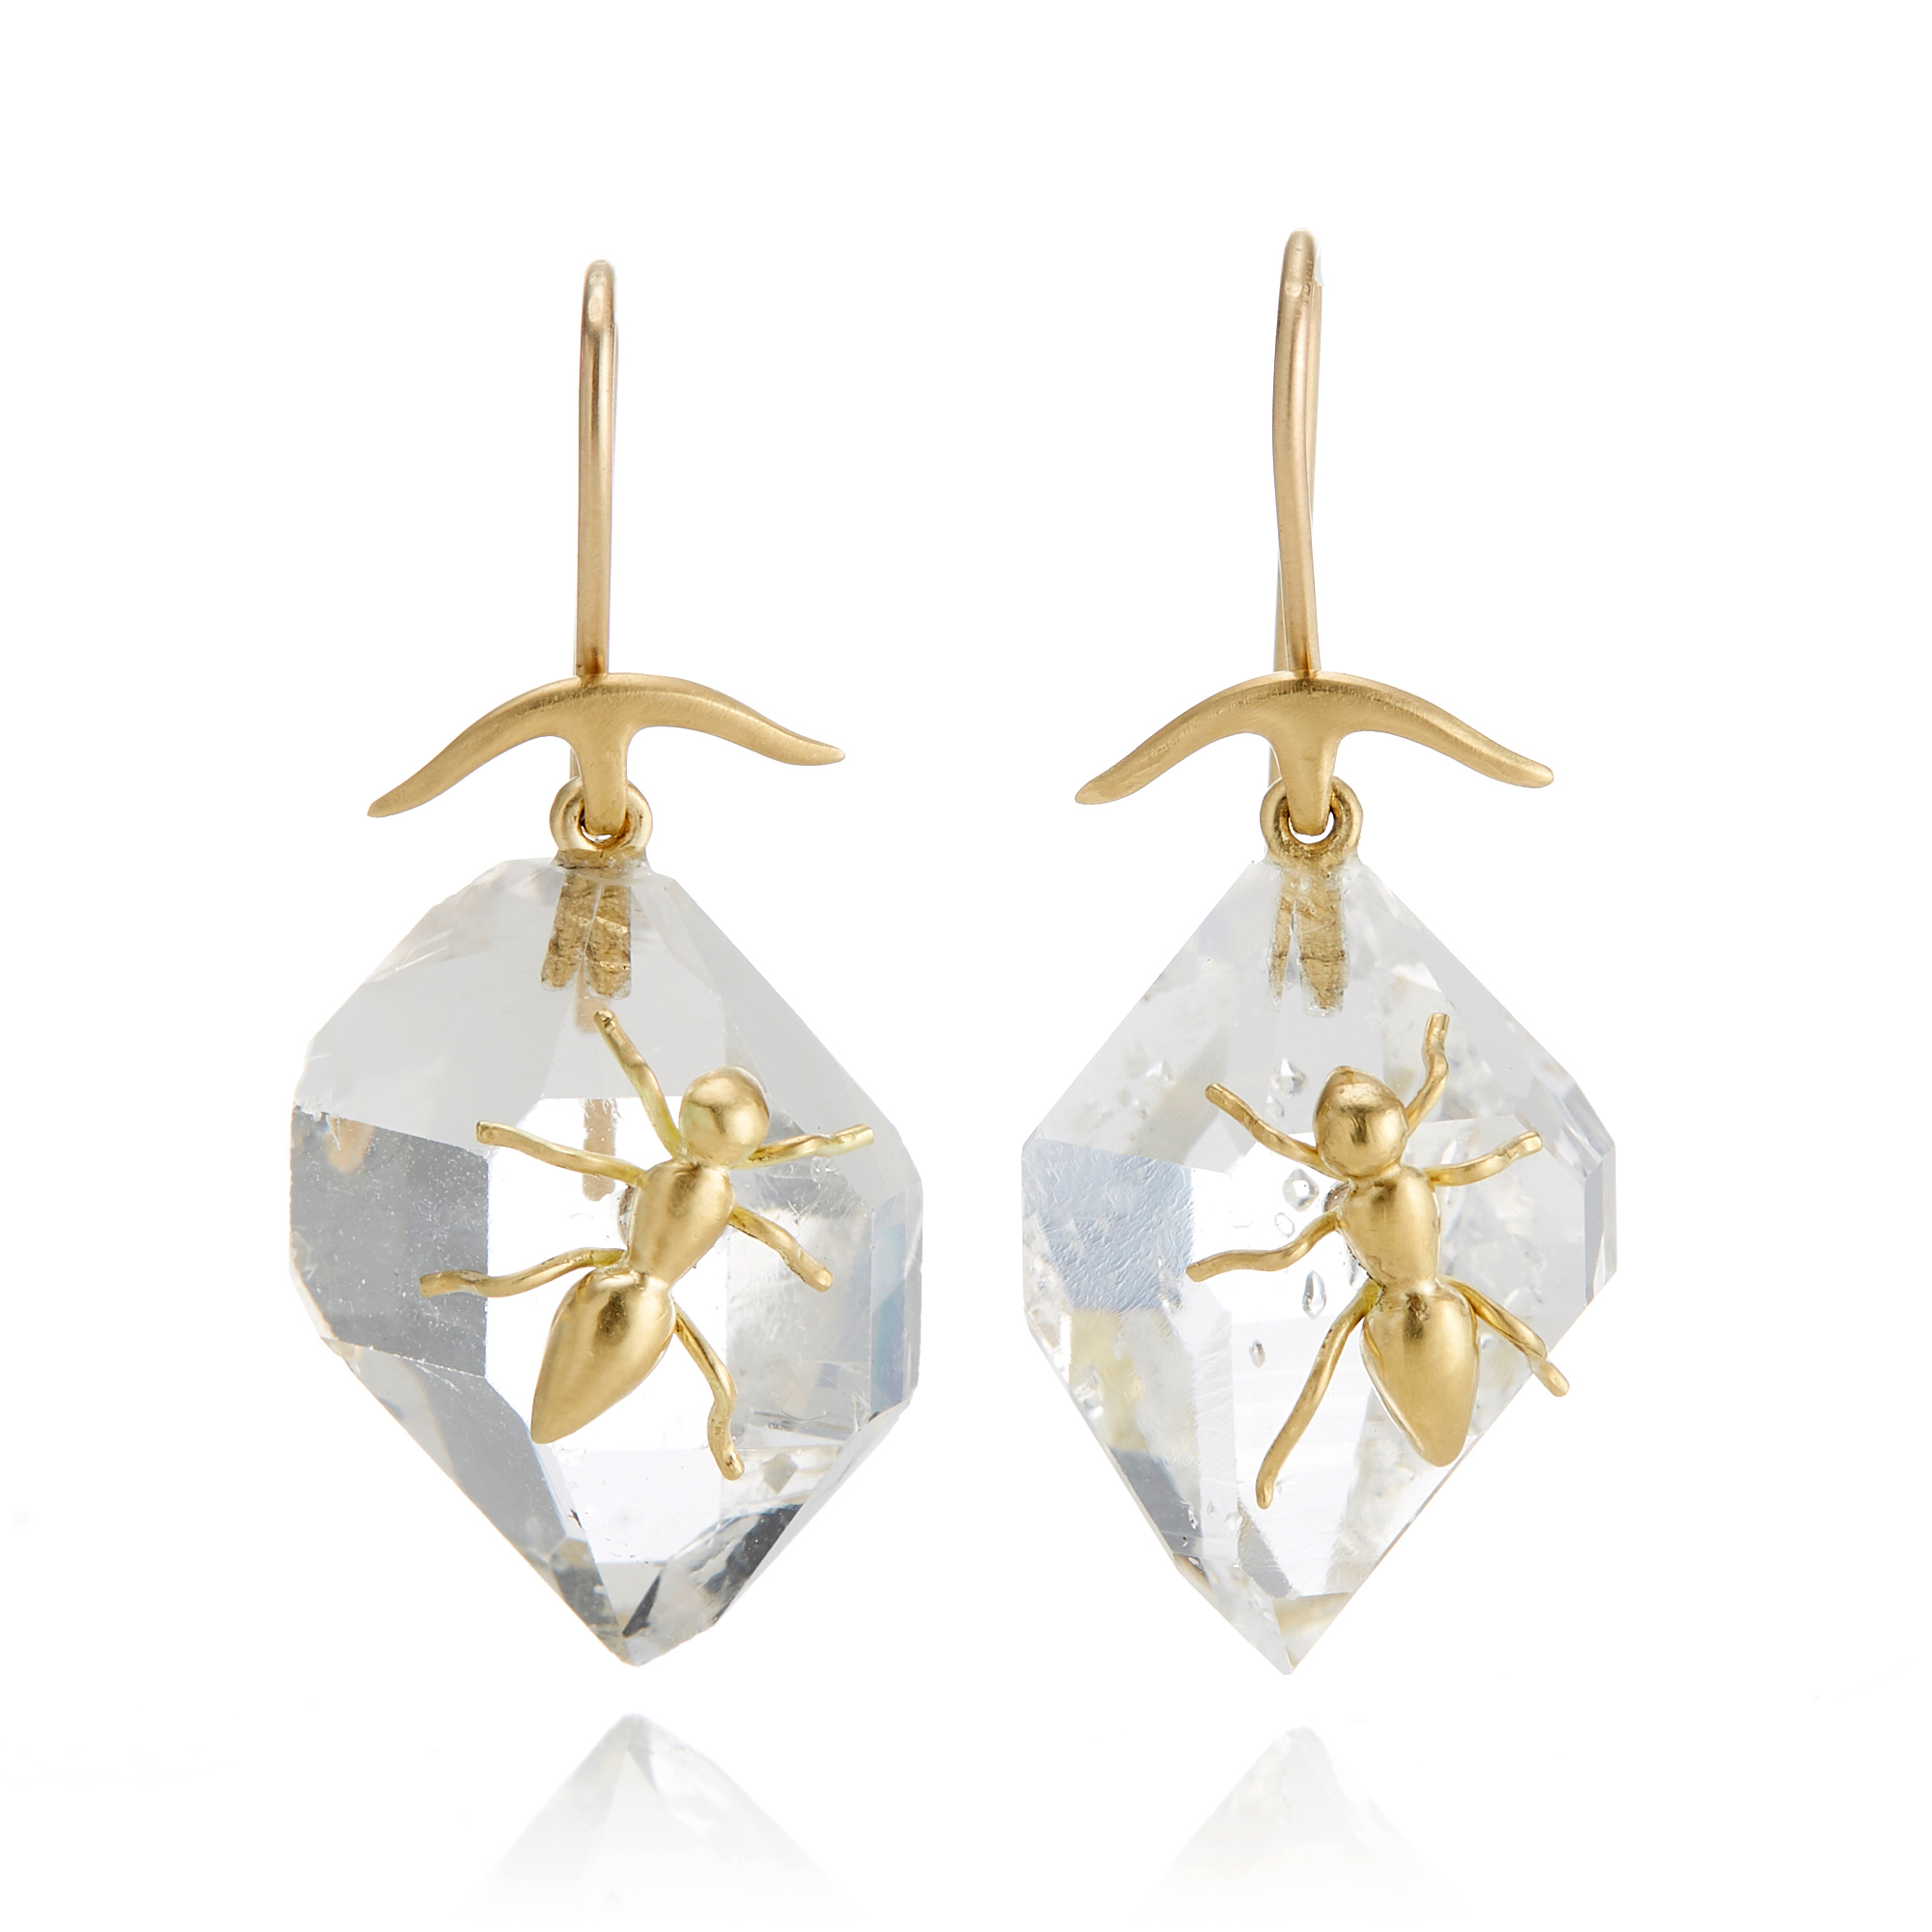 Gabriella Kiss Herkimer Quartz & Gold Ant Drop Earrings